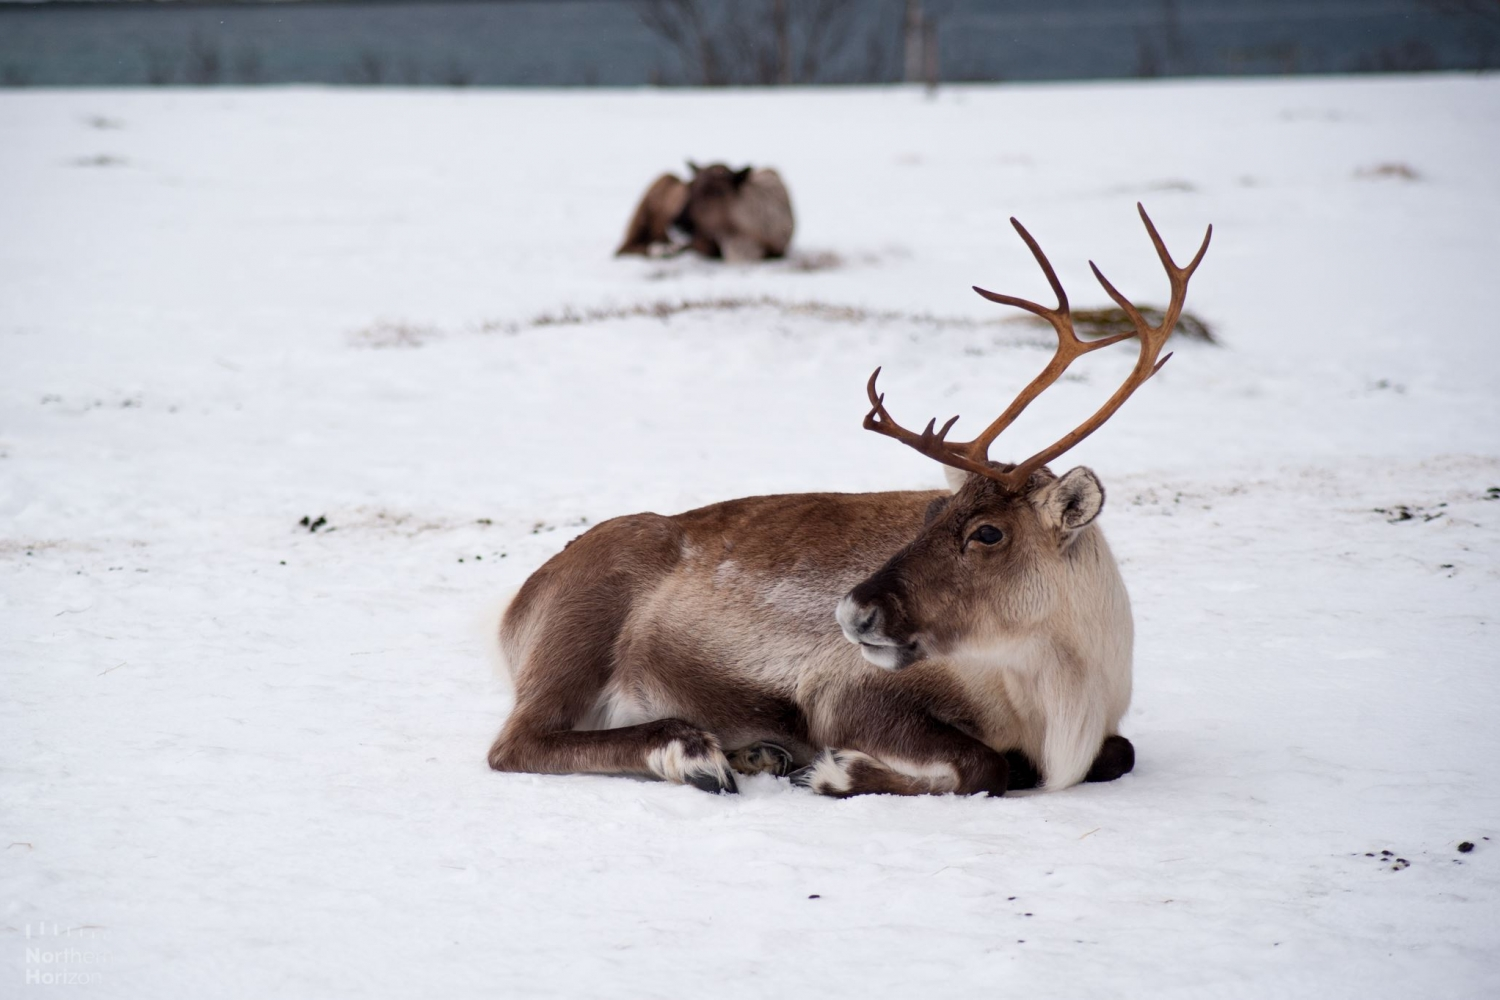 Reindeer resting in the snow